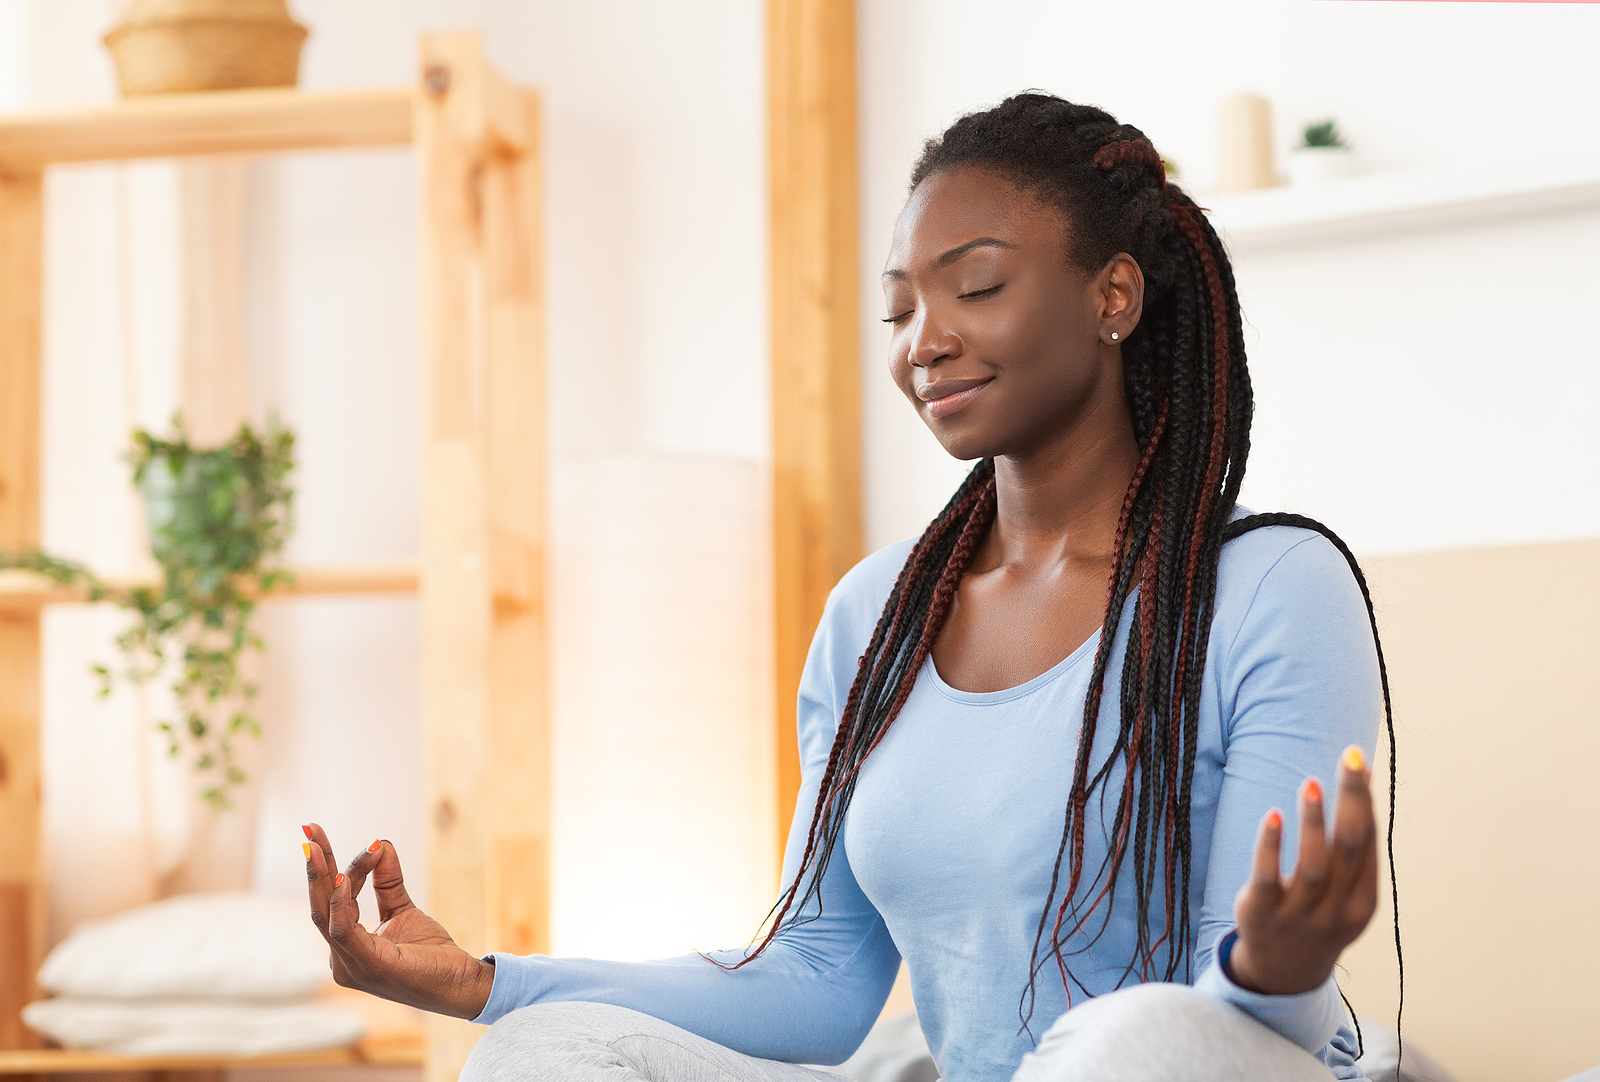 Meditation Mind-Calming In Hectic Times